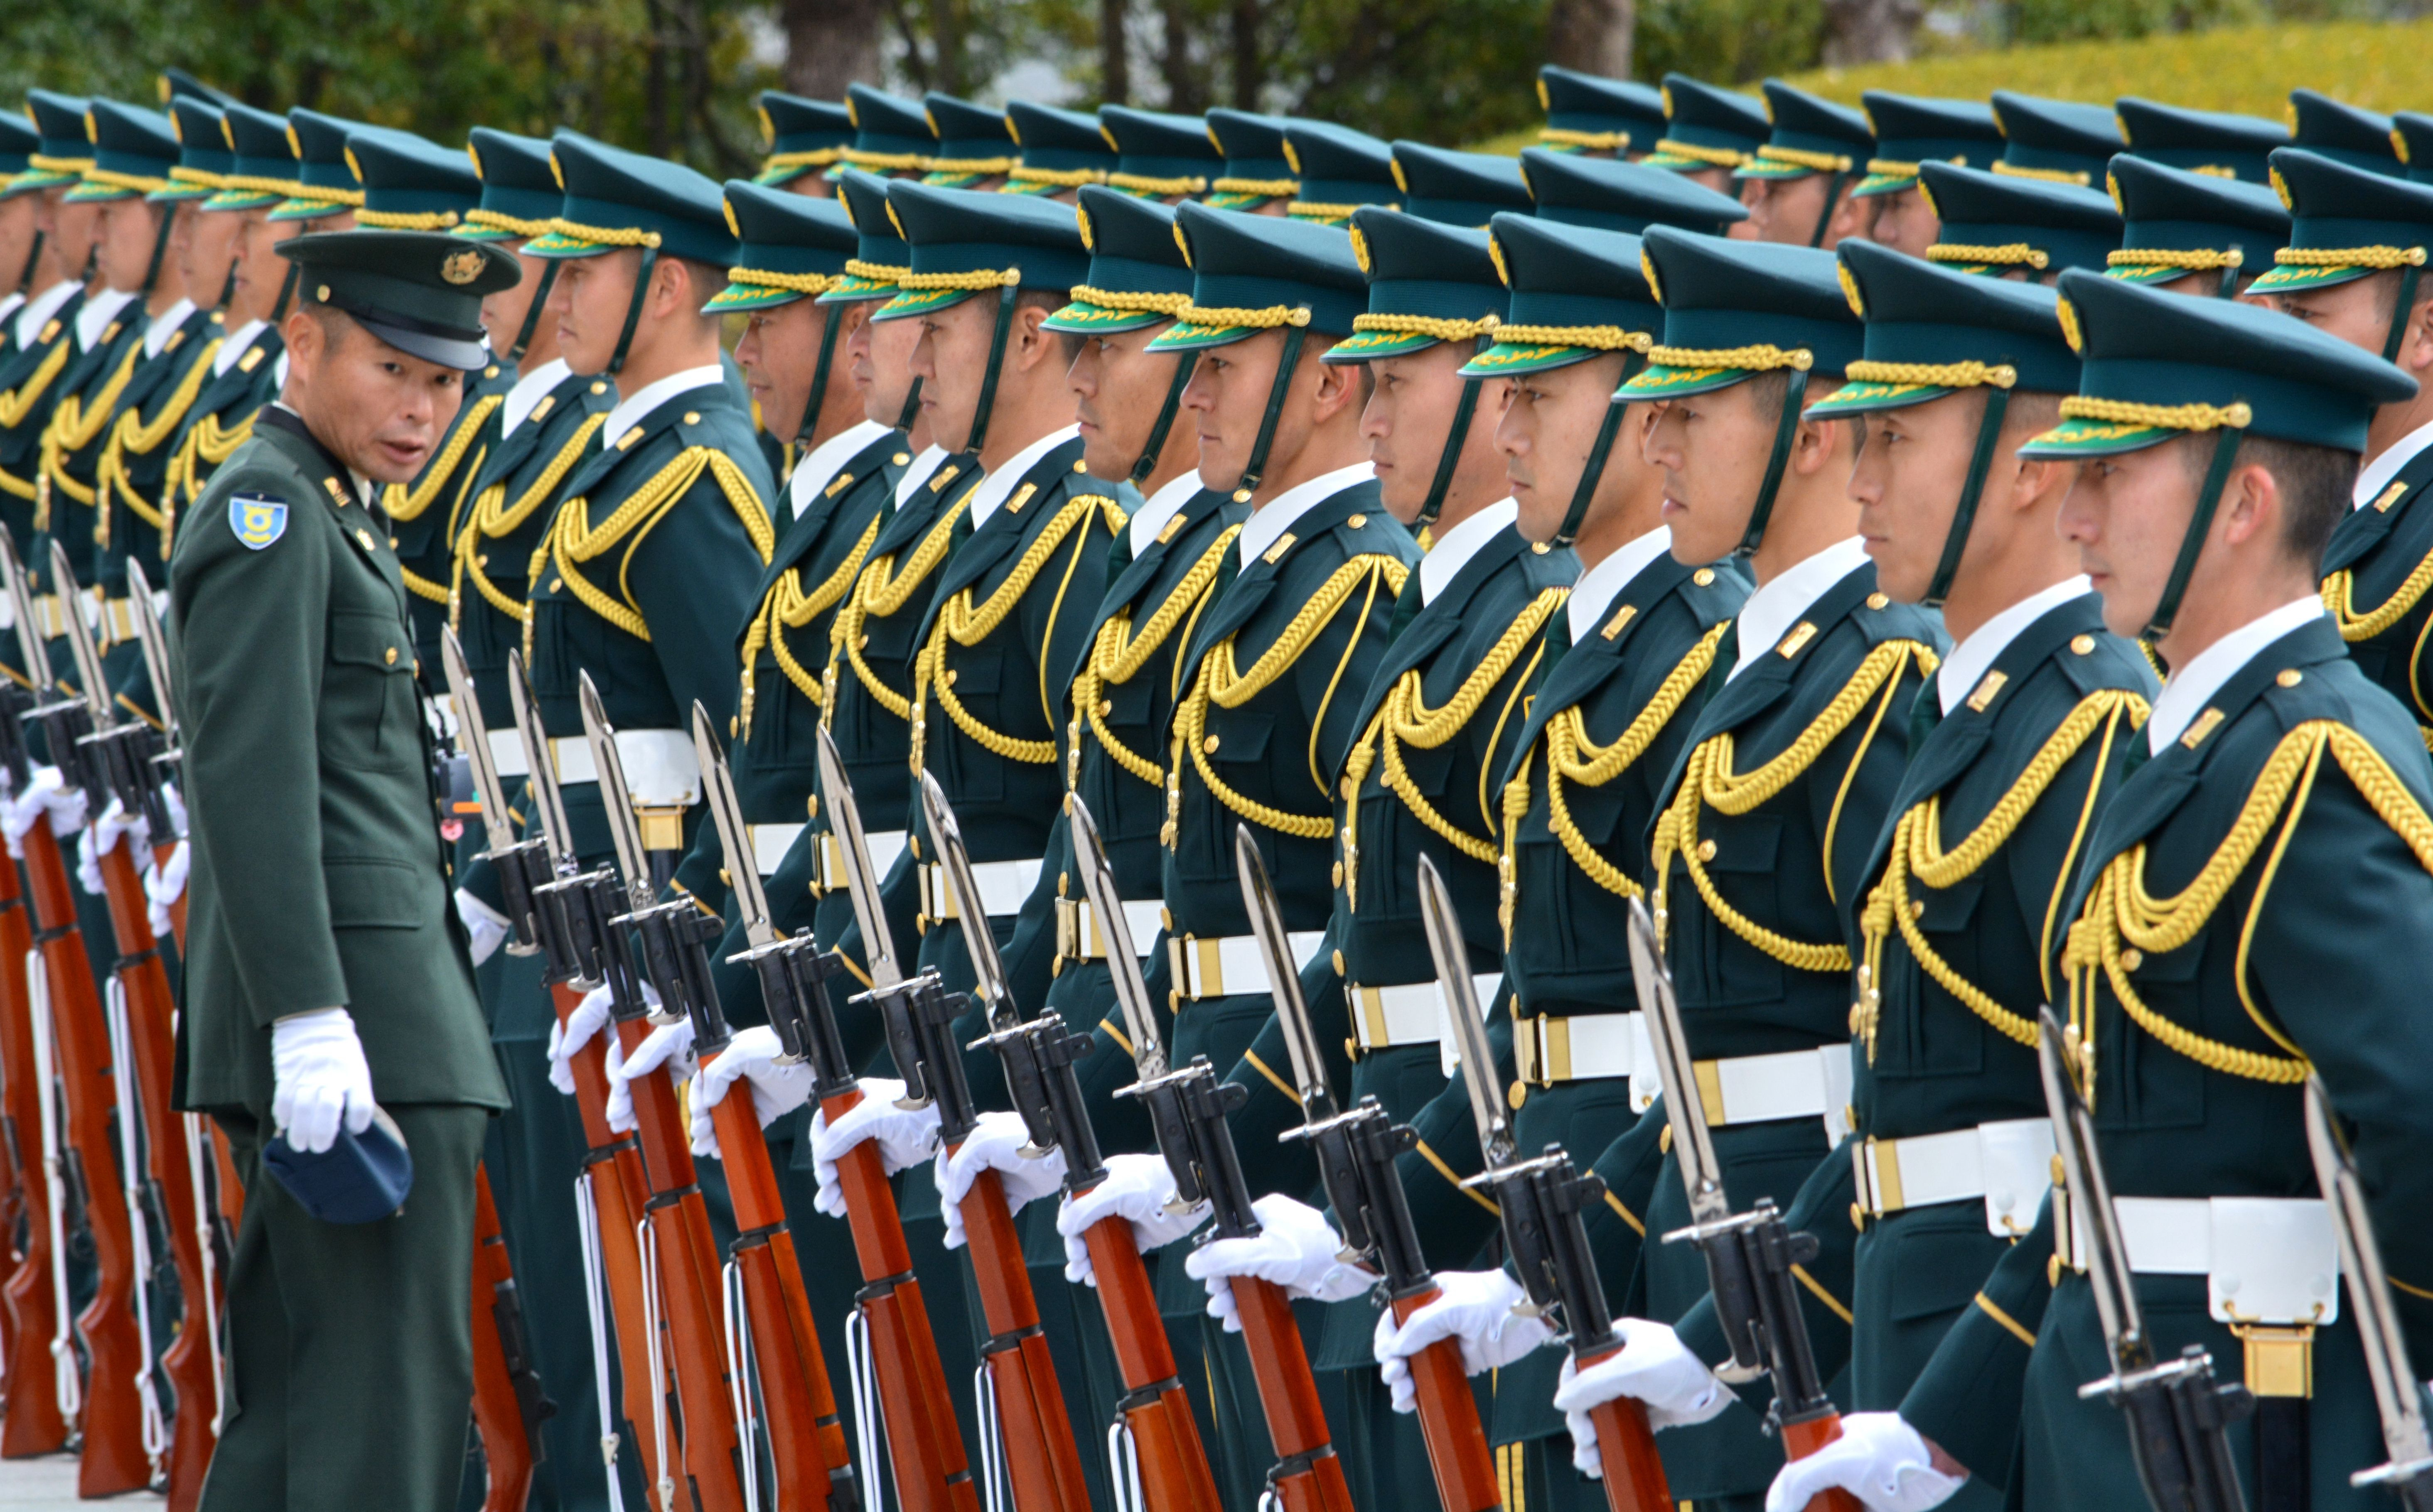 Japan's Self-Defense Force honor guards prepare for a welcoming ceremony of new Defense Minister Gen Nakatani in Tokyo on Dec. 25, 2014